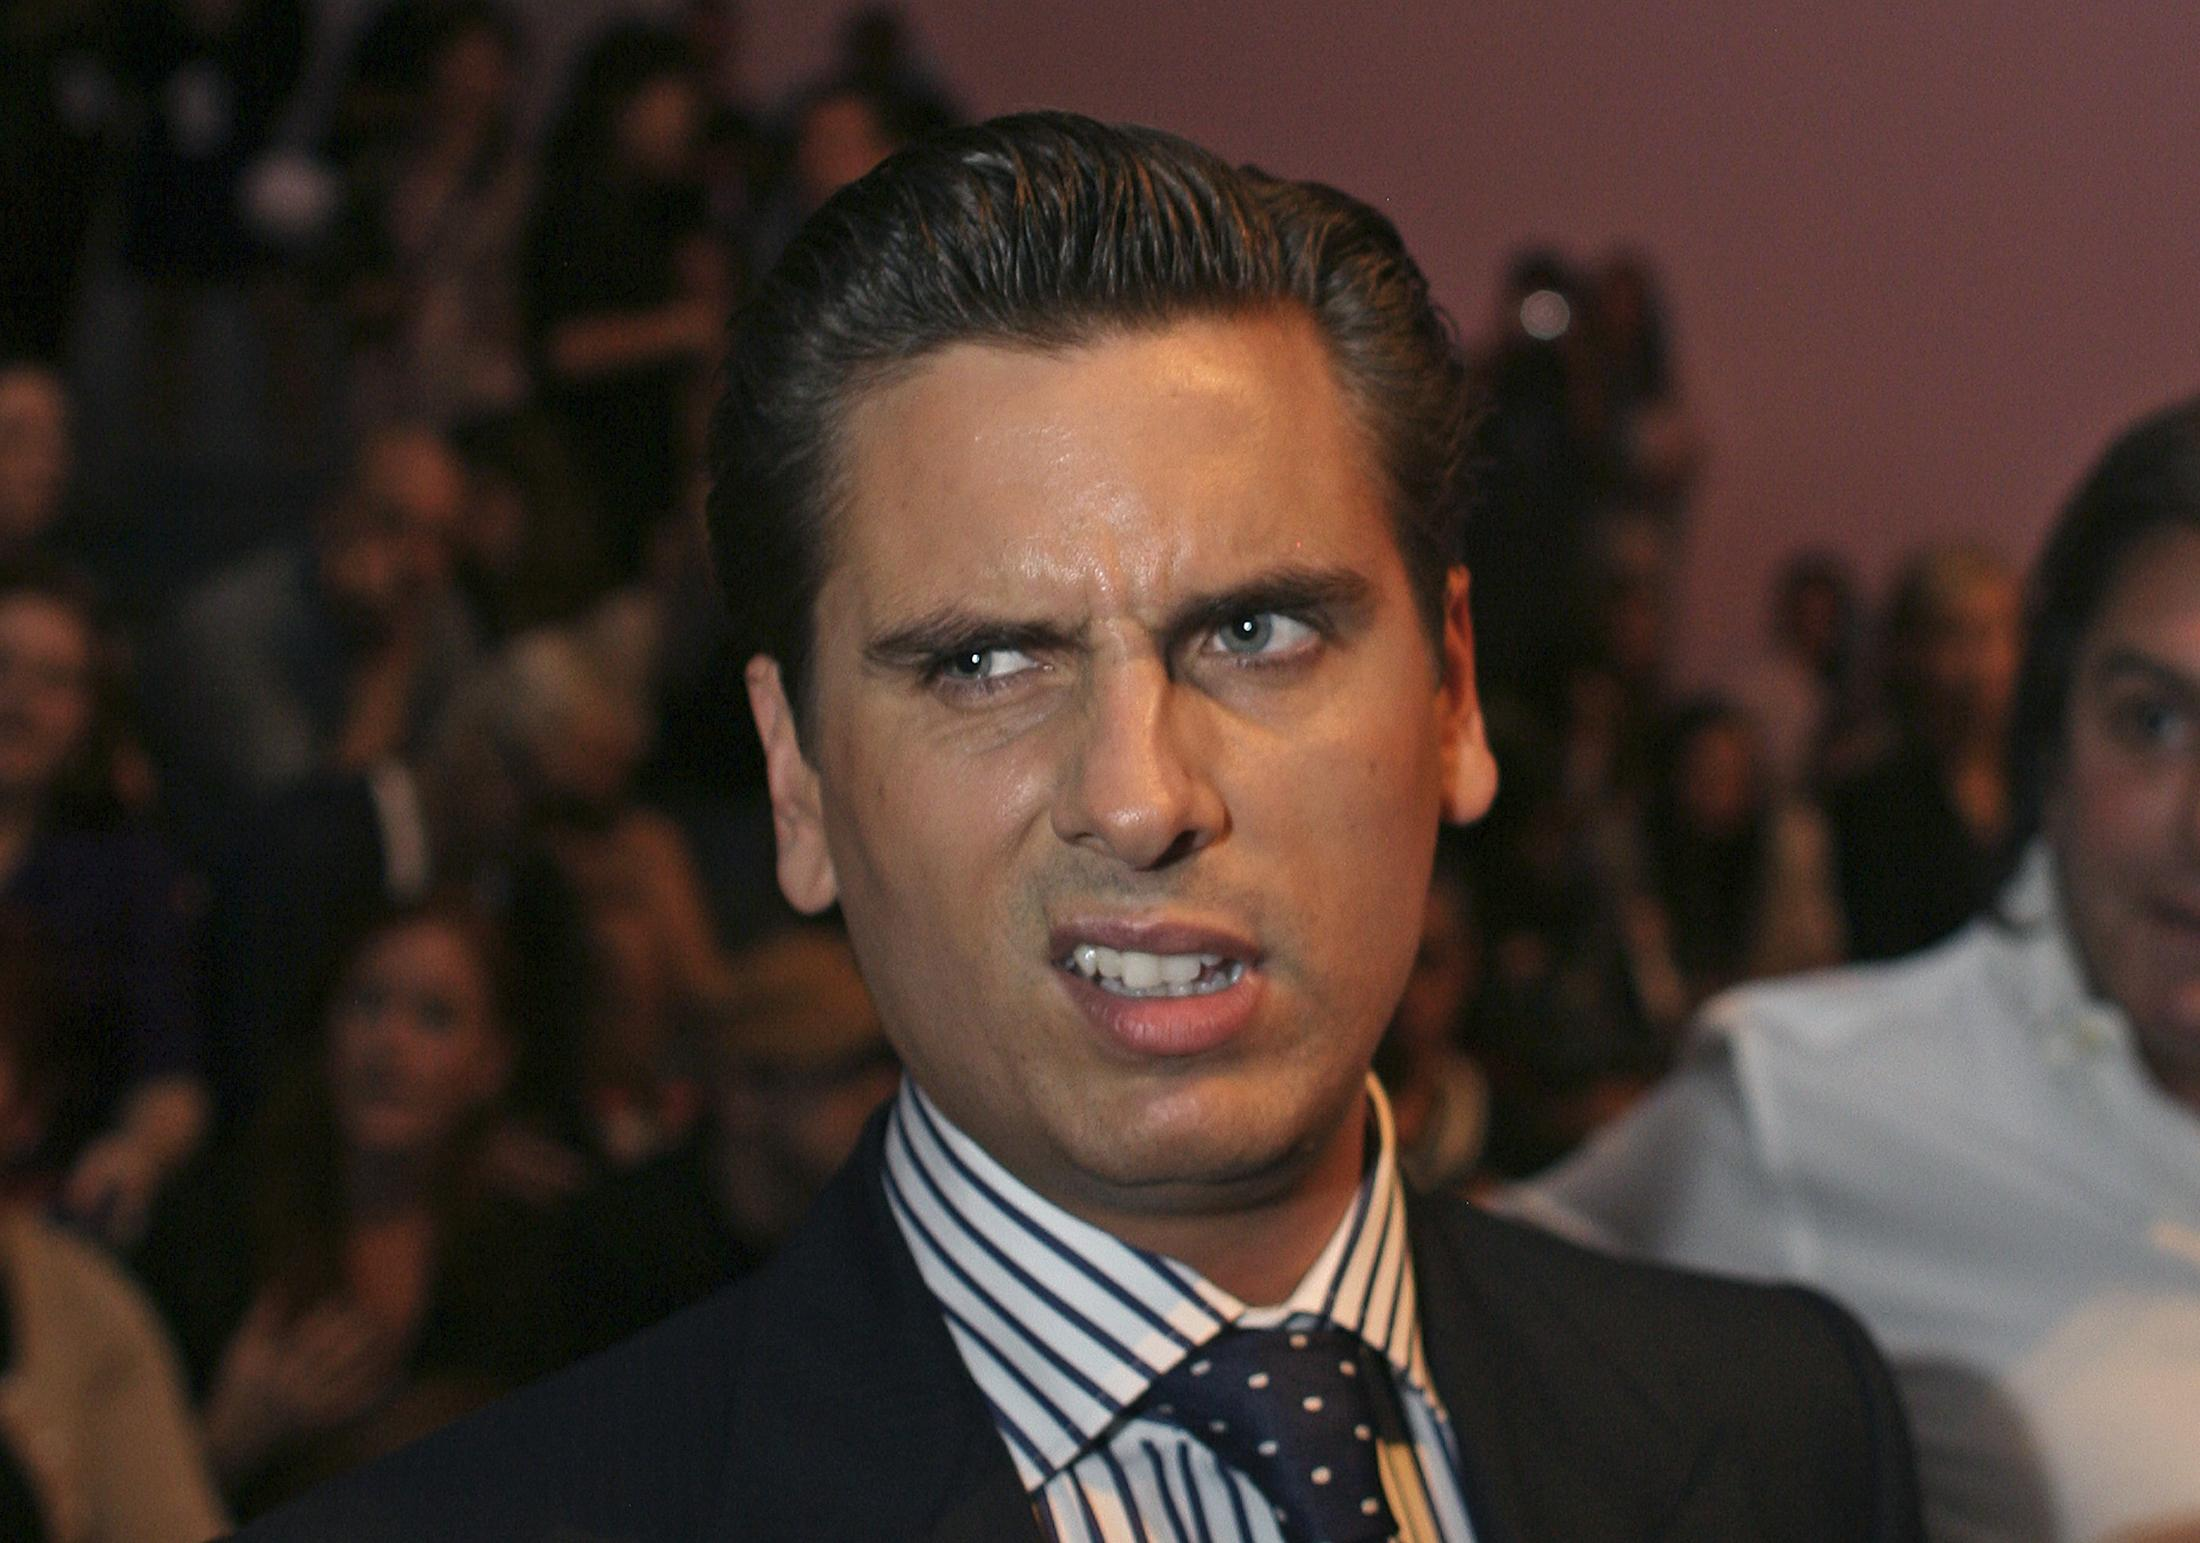 Kris Jenner is making new reality show for Scott Disick?